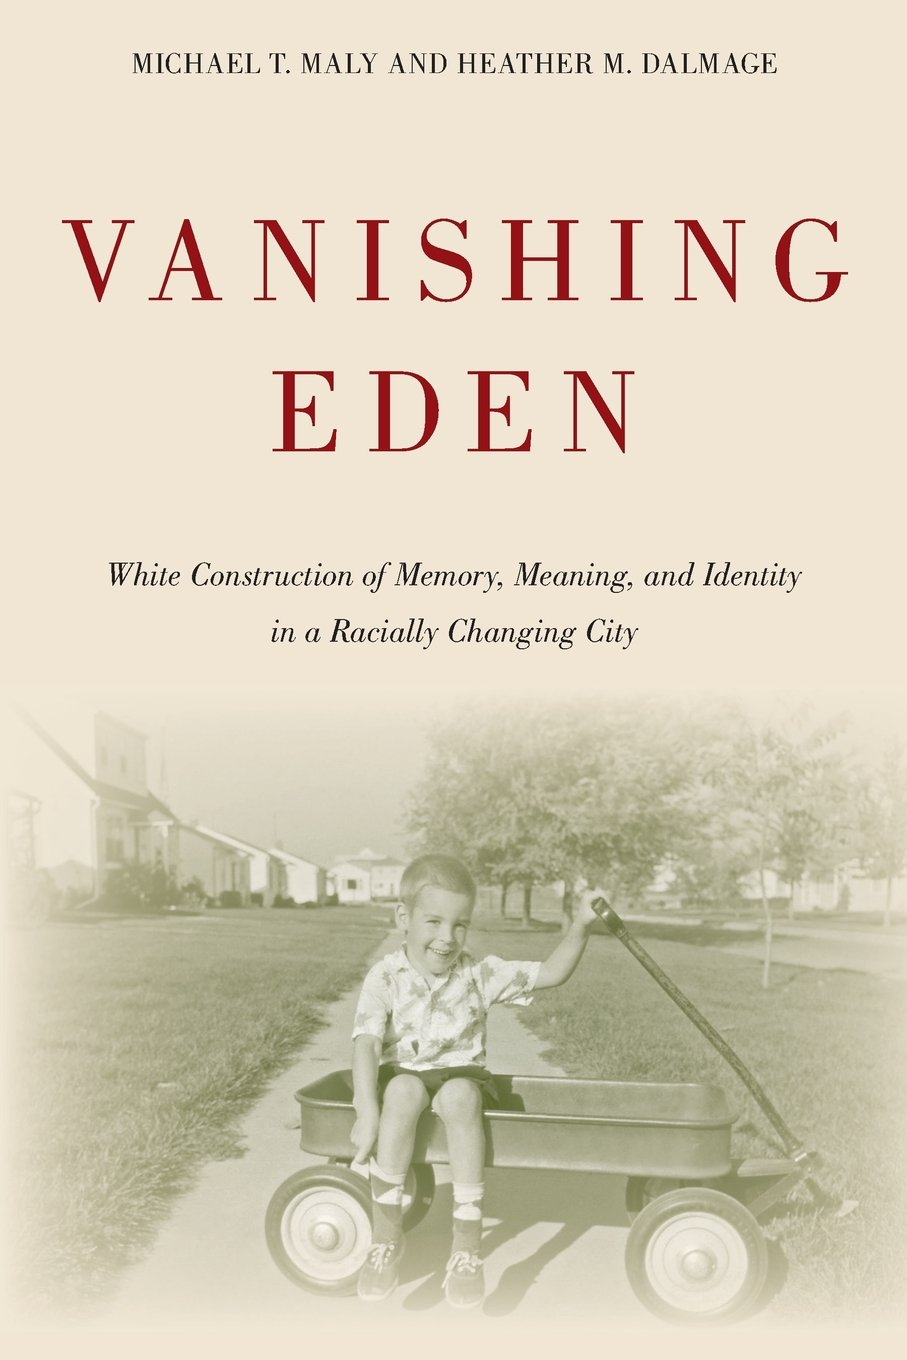 Vanishing Eden: White Construction of Memory, Meaning, and Identity in a Racially Changing City (Urban Life, Landscape and Policy) pdf